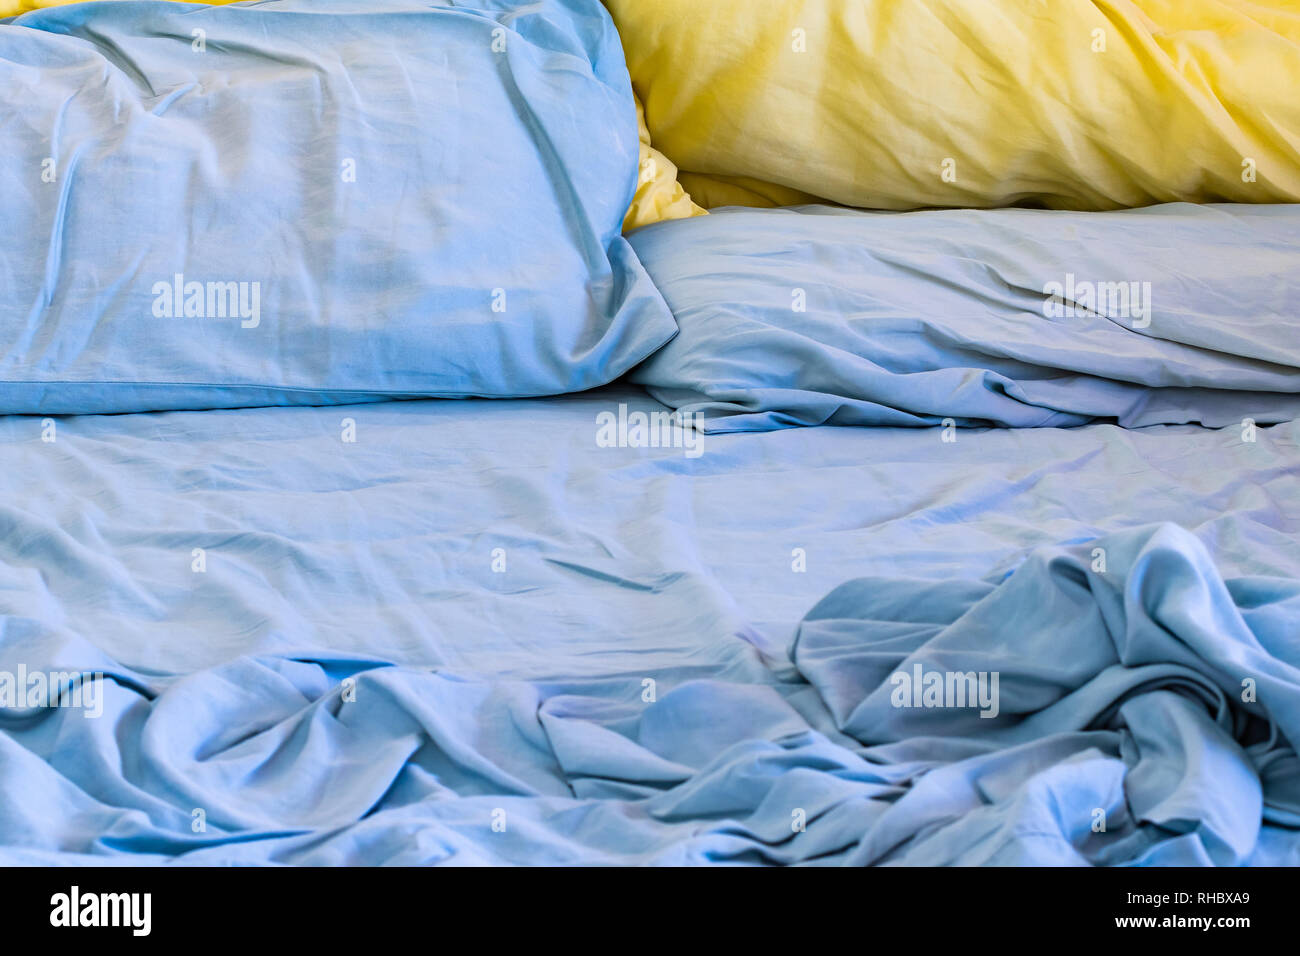 Messy unmade bed with blue sheets and blue and yellow pillows - Stock Image